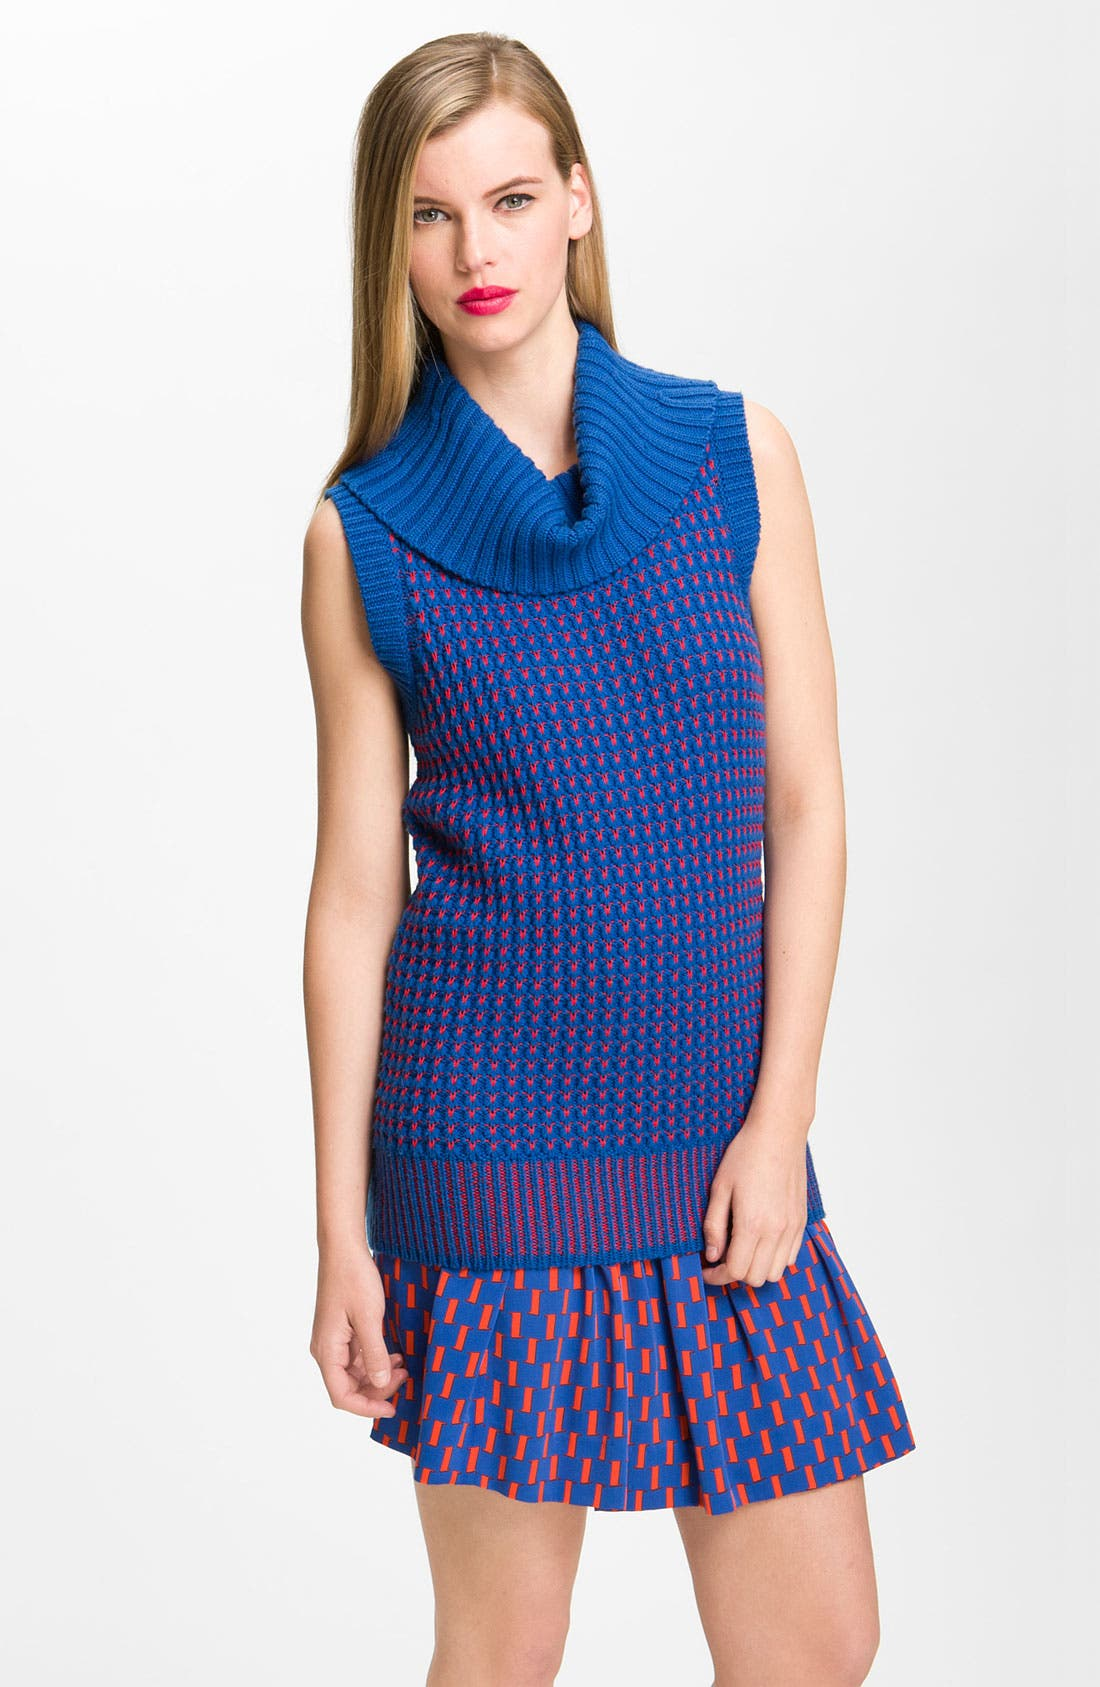 Alternate Image 1 Selected - Diane von Furstenberg 'Bede' Cowl Neck Sweater